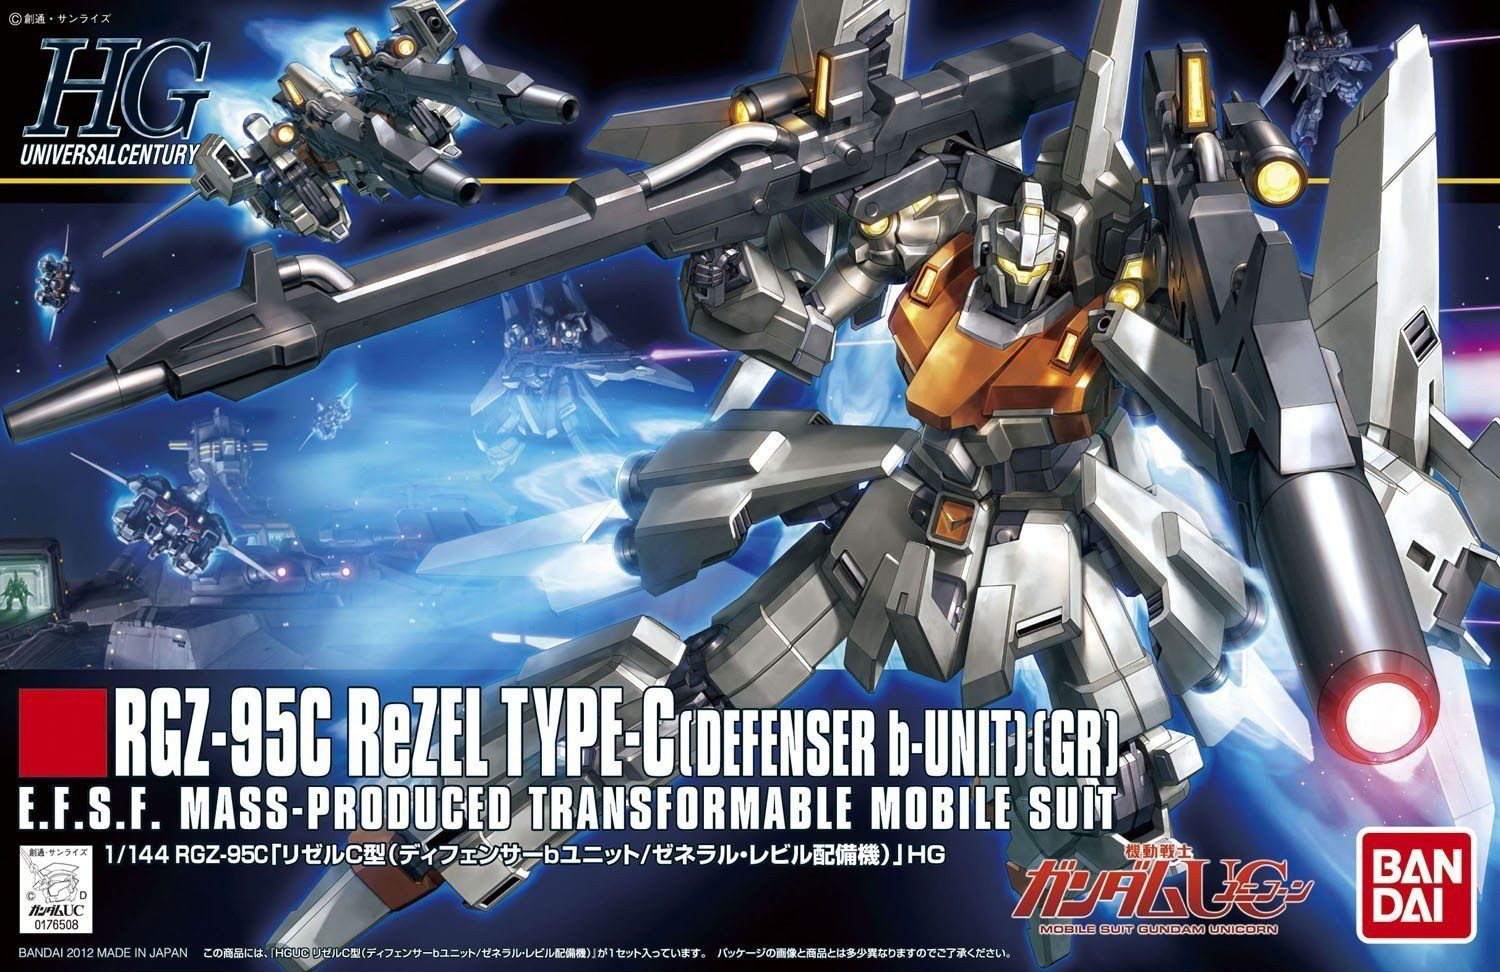 HGUC 1/144 #142 ReZel Defenser B-Unit